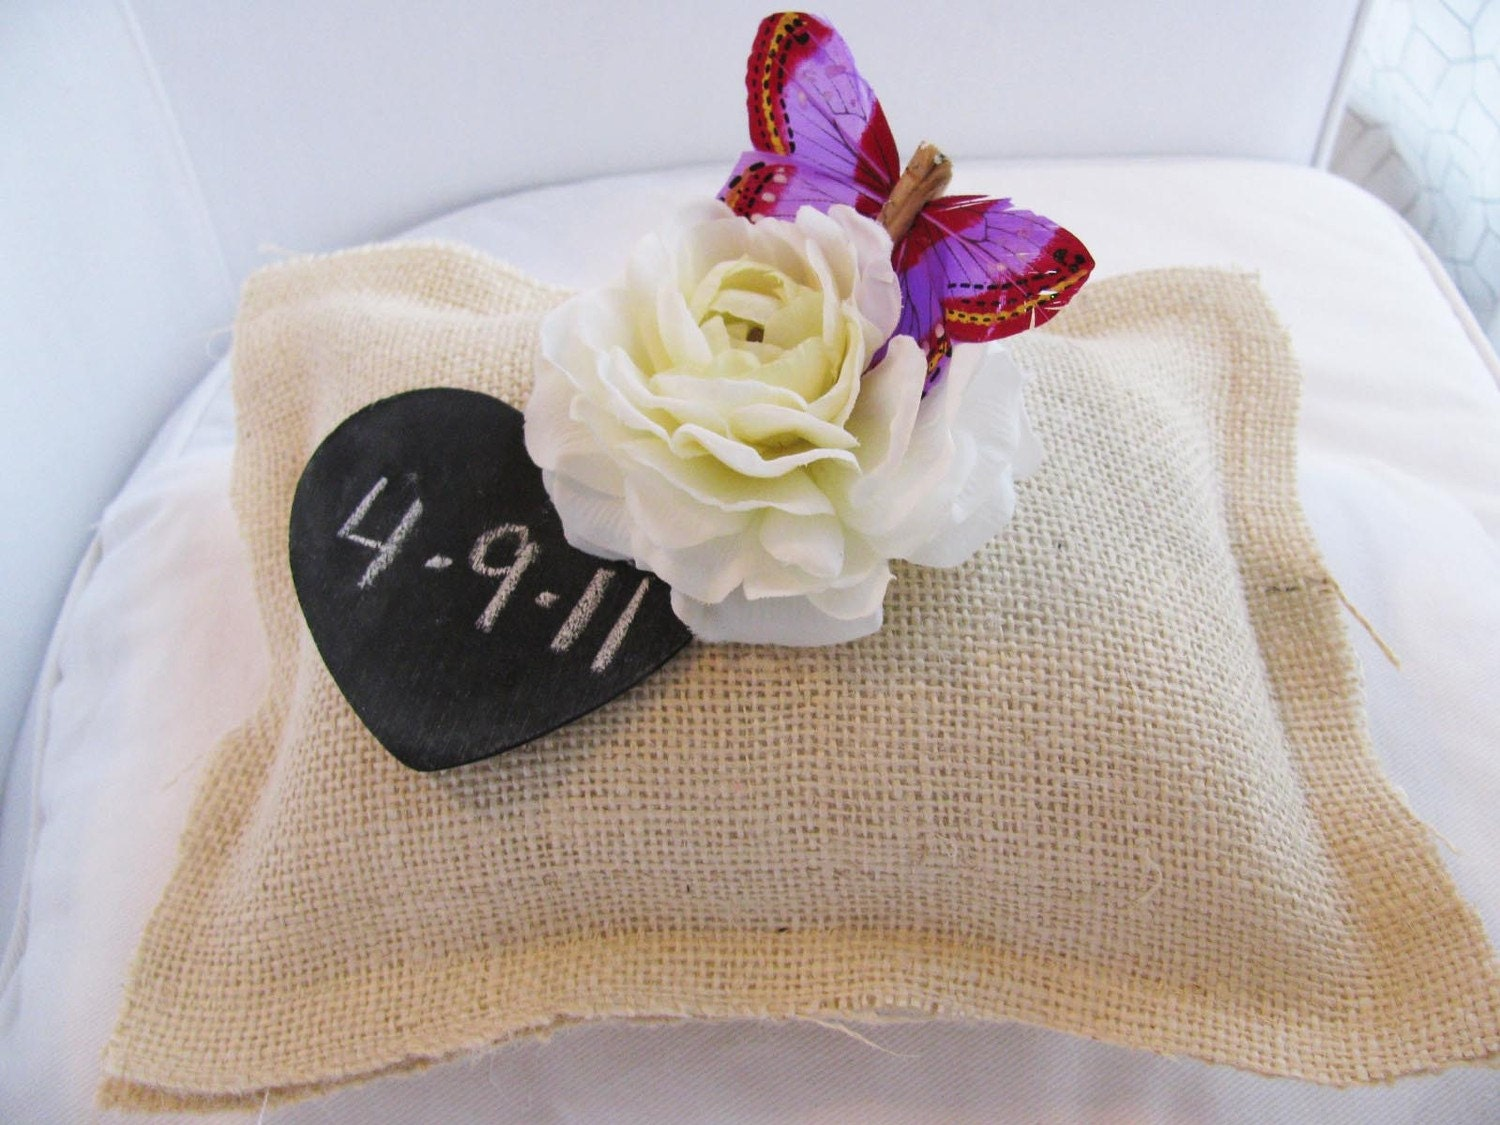 Woodland Outdoor Butterfly Rustic Burlap Wedding Ring Bearer Pillow Personalized Heart Chalkboard Tag You Customize Flowers